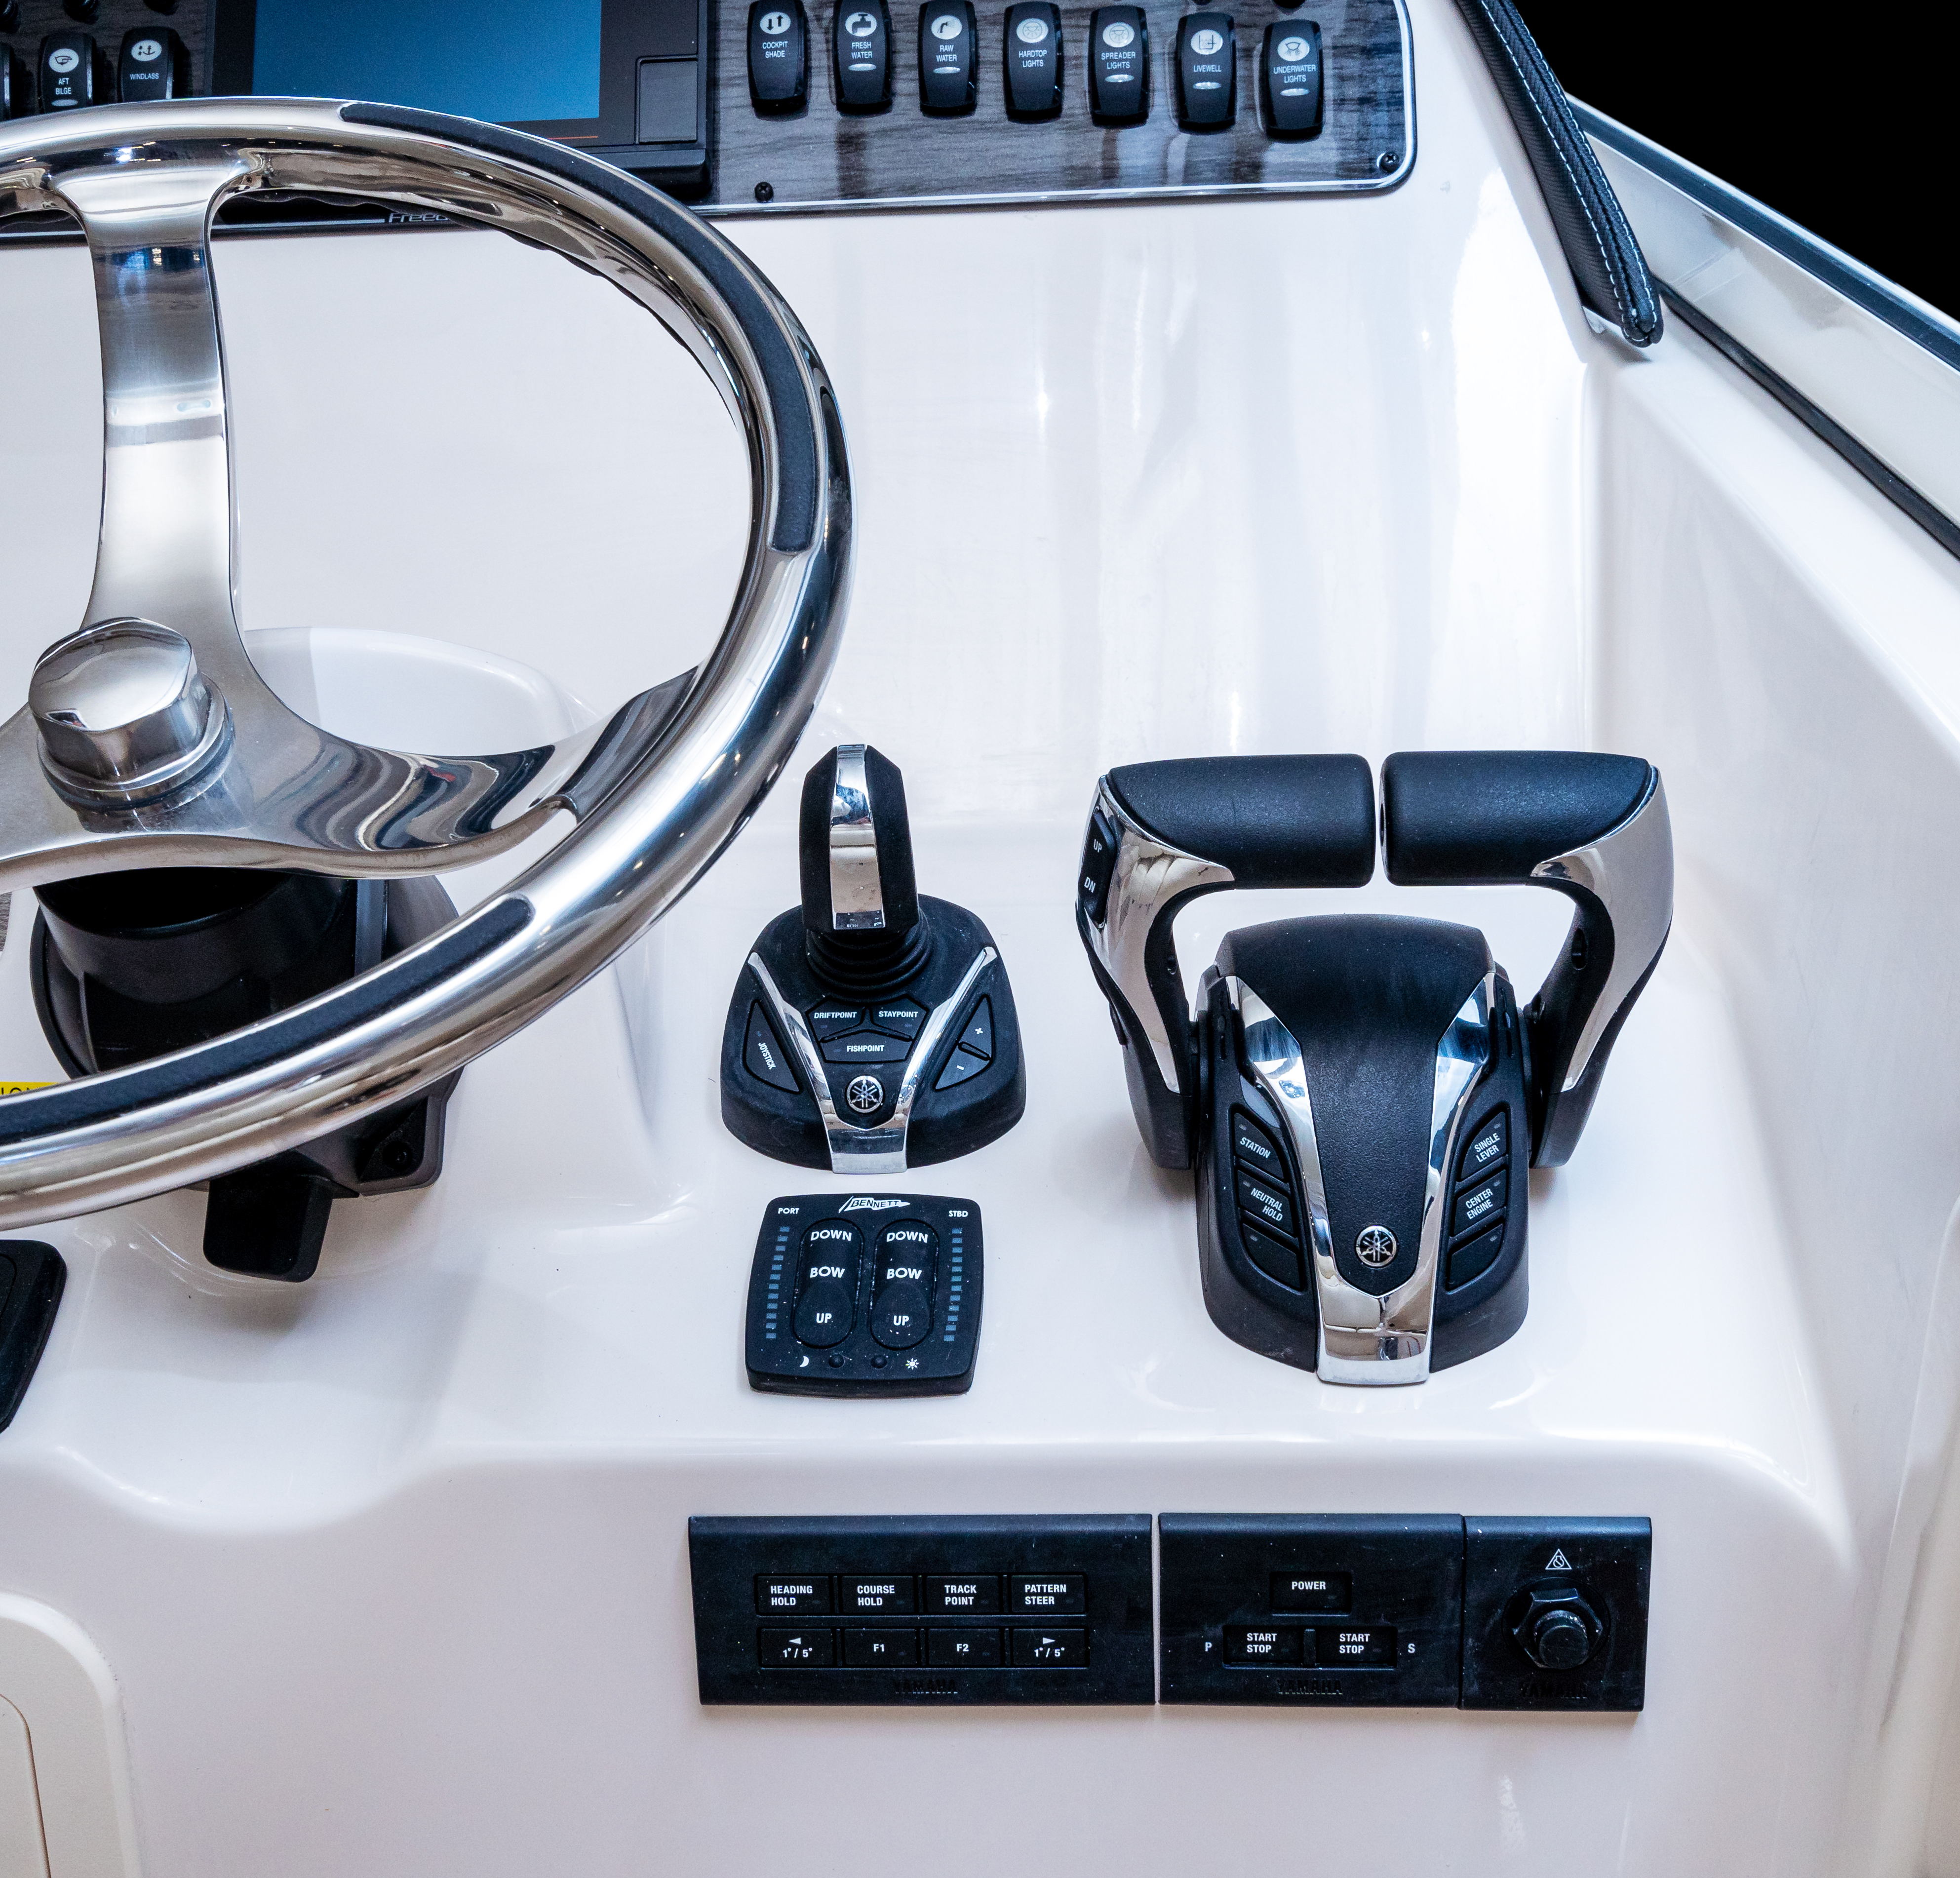 Grady-White Freedom 307 30-foot dual console with Yamaha Helm Master Full Maneuverability